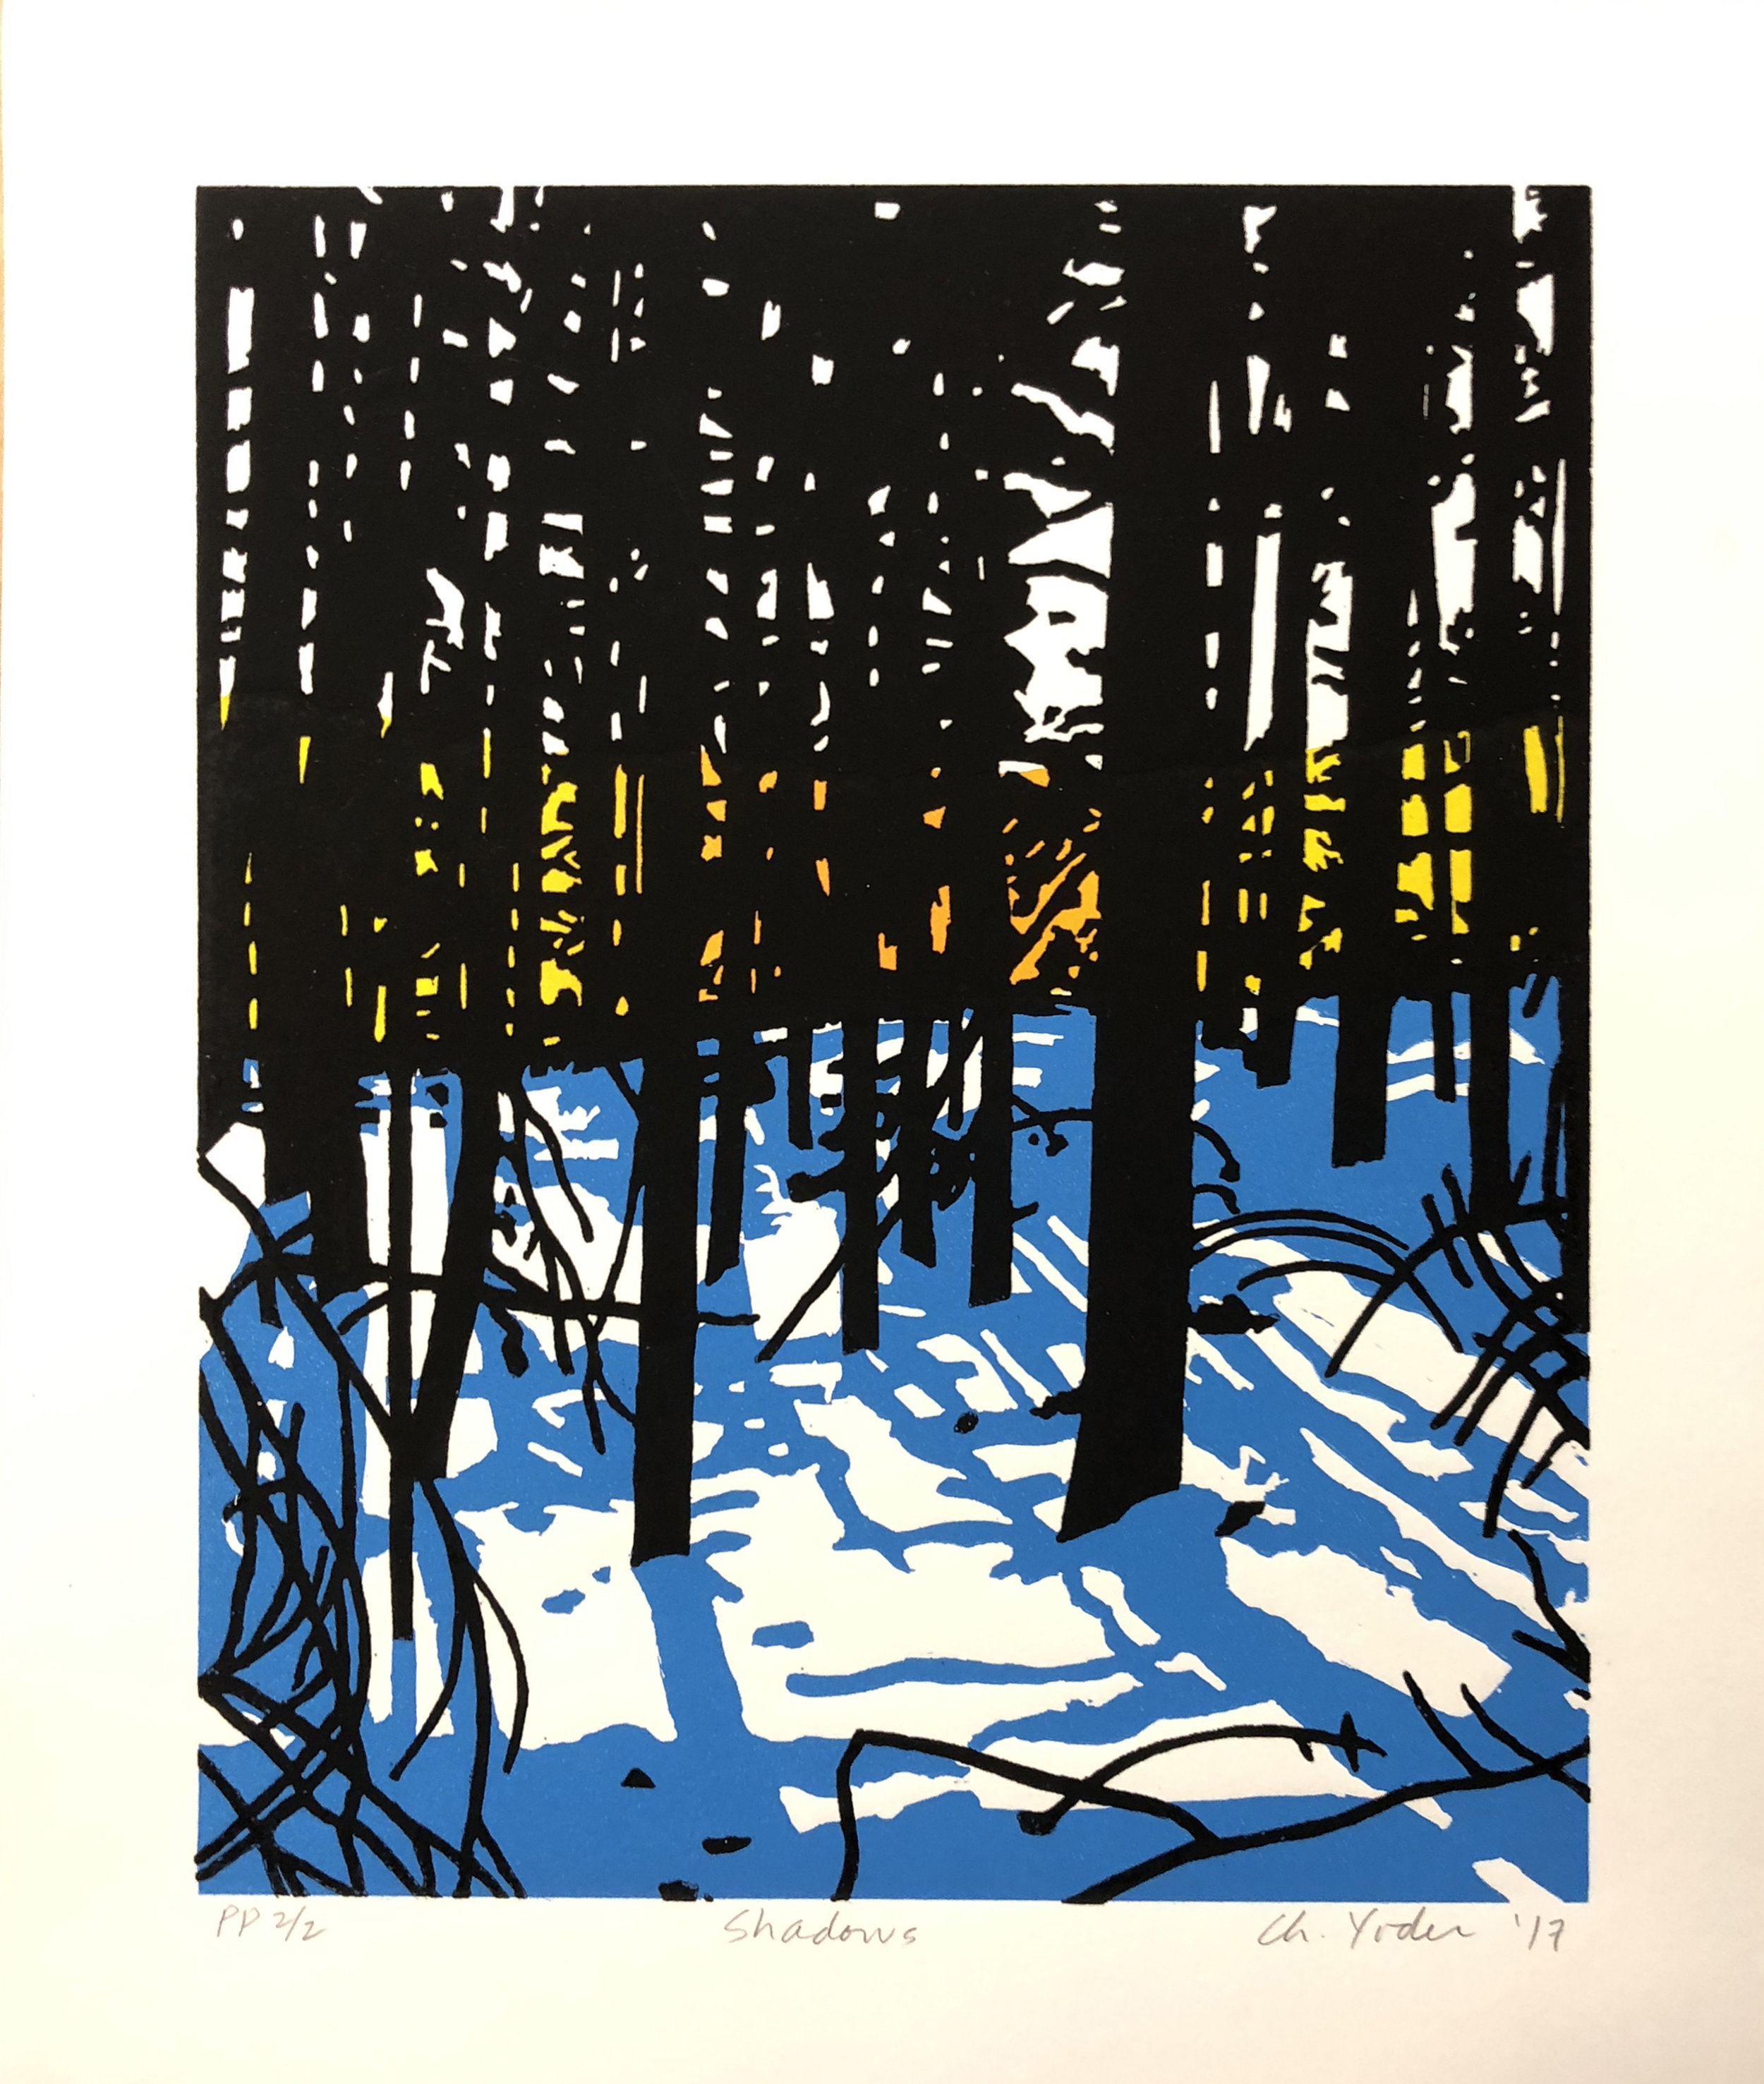 "SHADOWS, 2017, 3-color linocut and silkscreen, 13 1/2"" x 10""  10 Artist's Proofs"